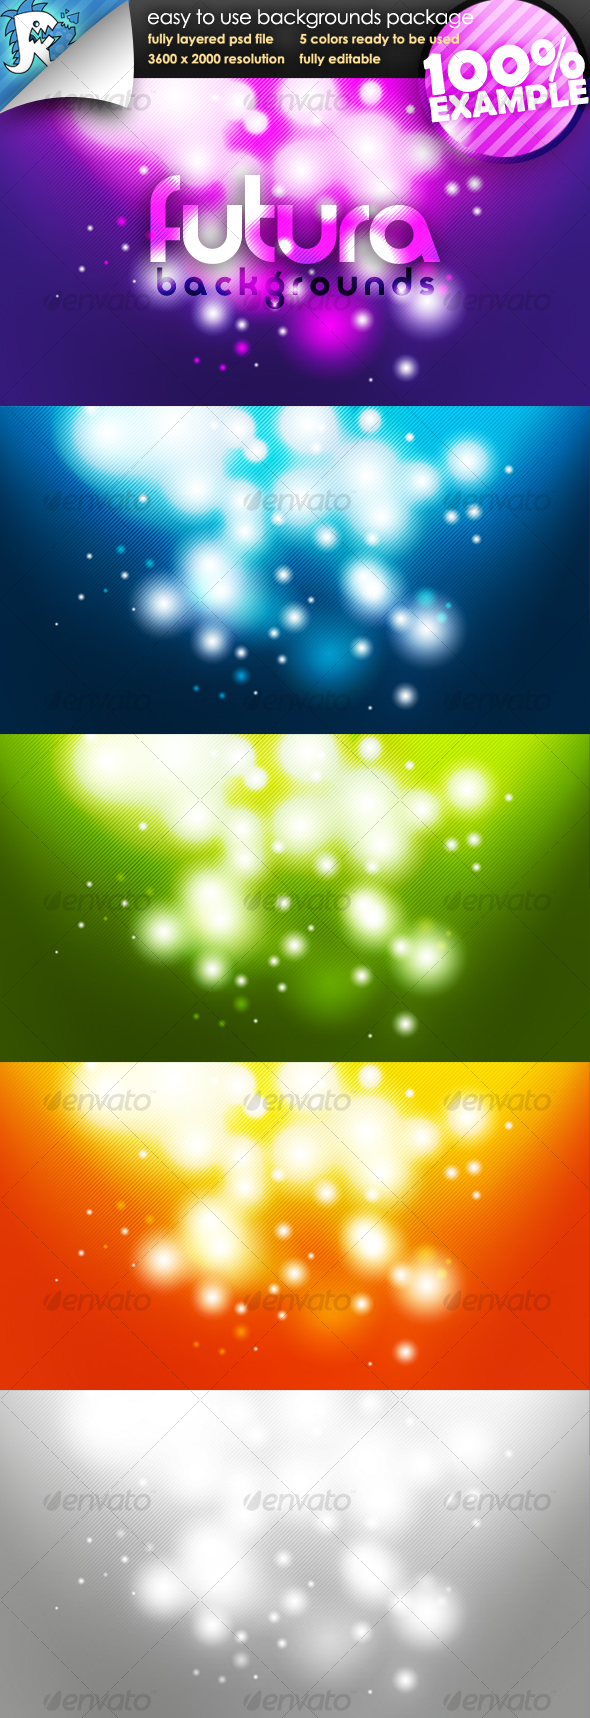 Futura Glow   Easy to use Backgrounds   Backgrounds Graphics 590x1718